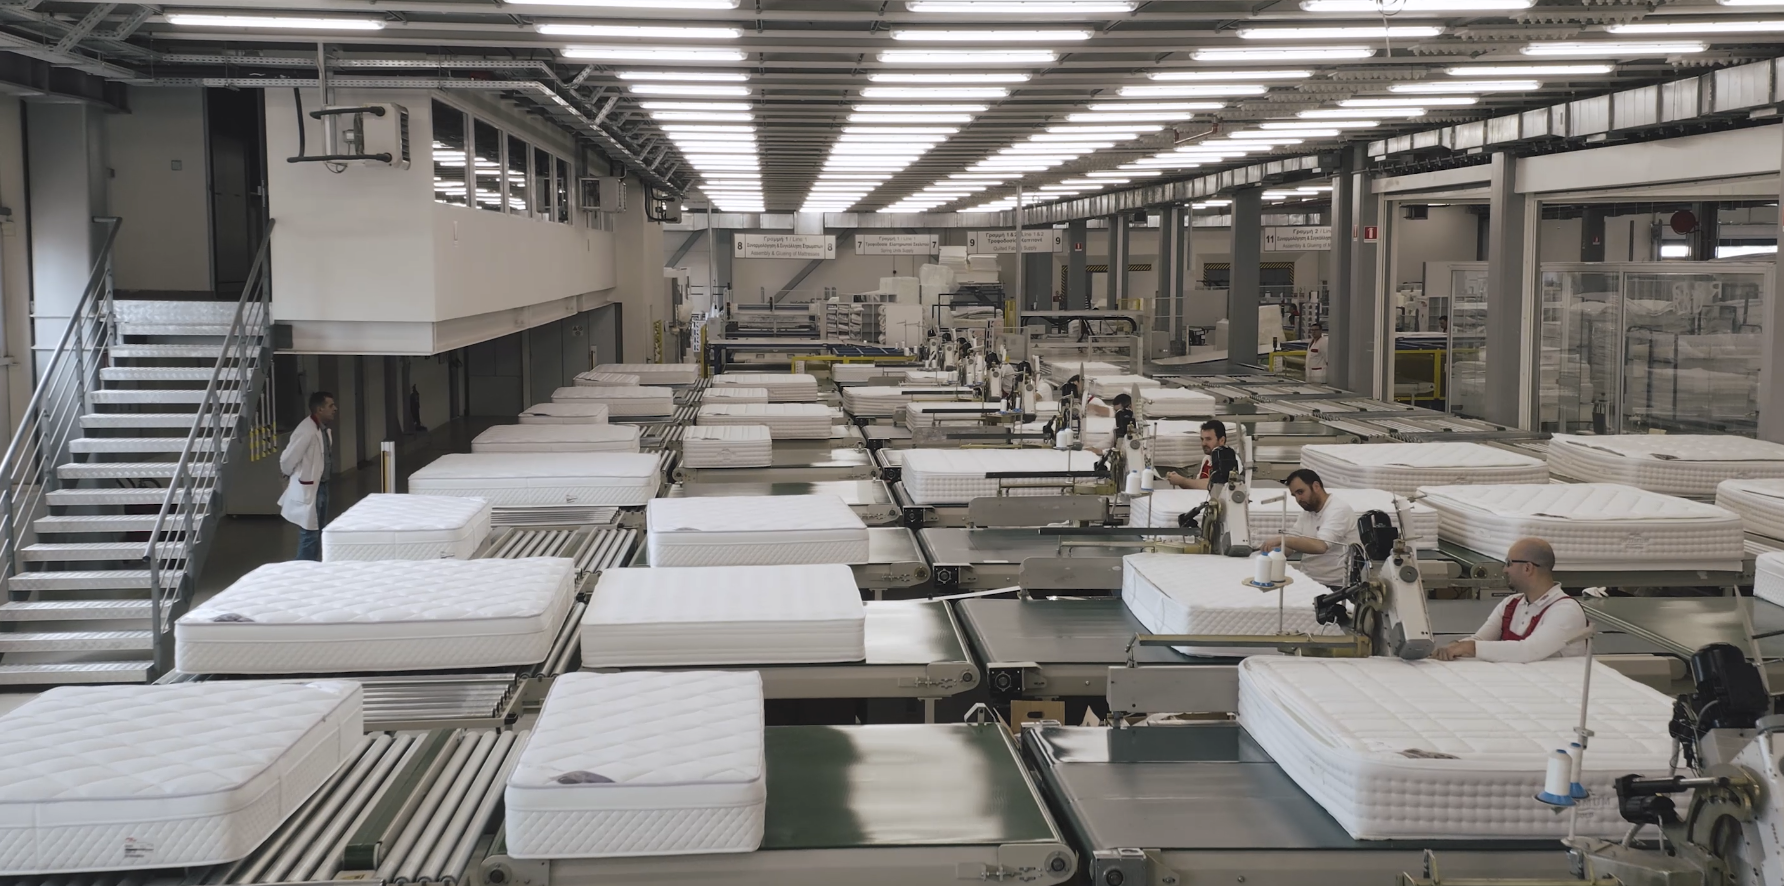 State-of-the-art production facilities